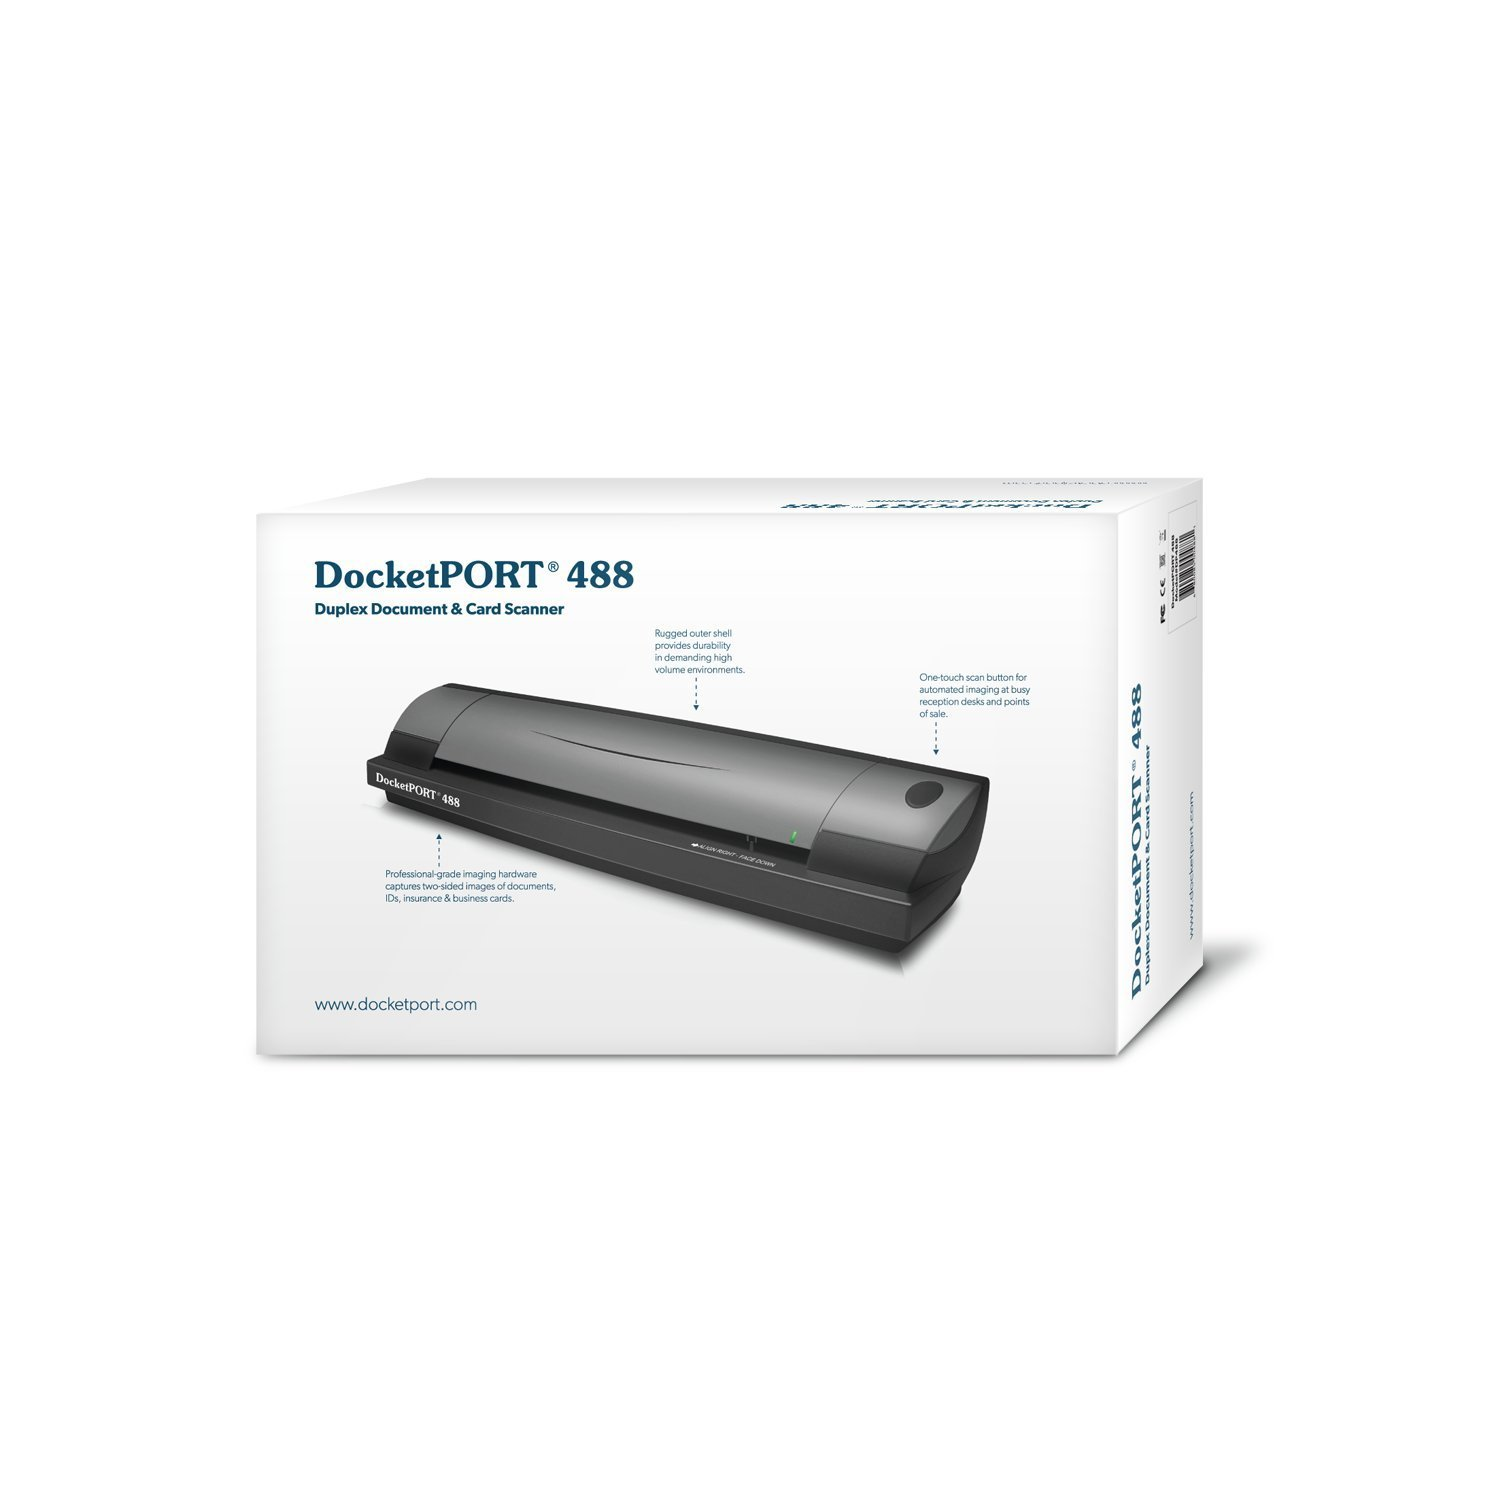 2dm9978 docketport 488 sheetfed scanner electronics